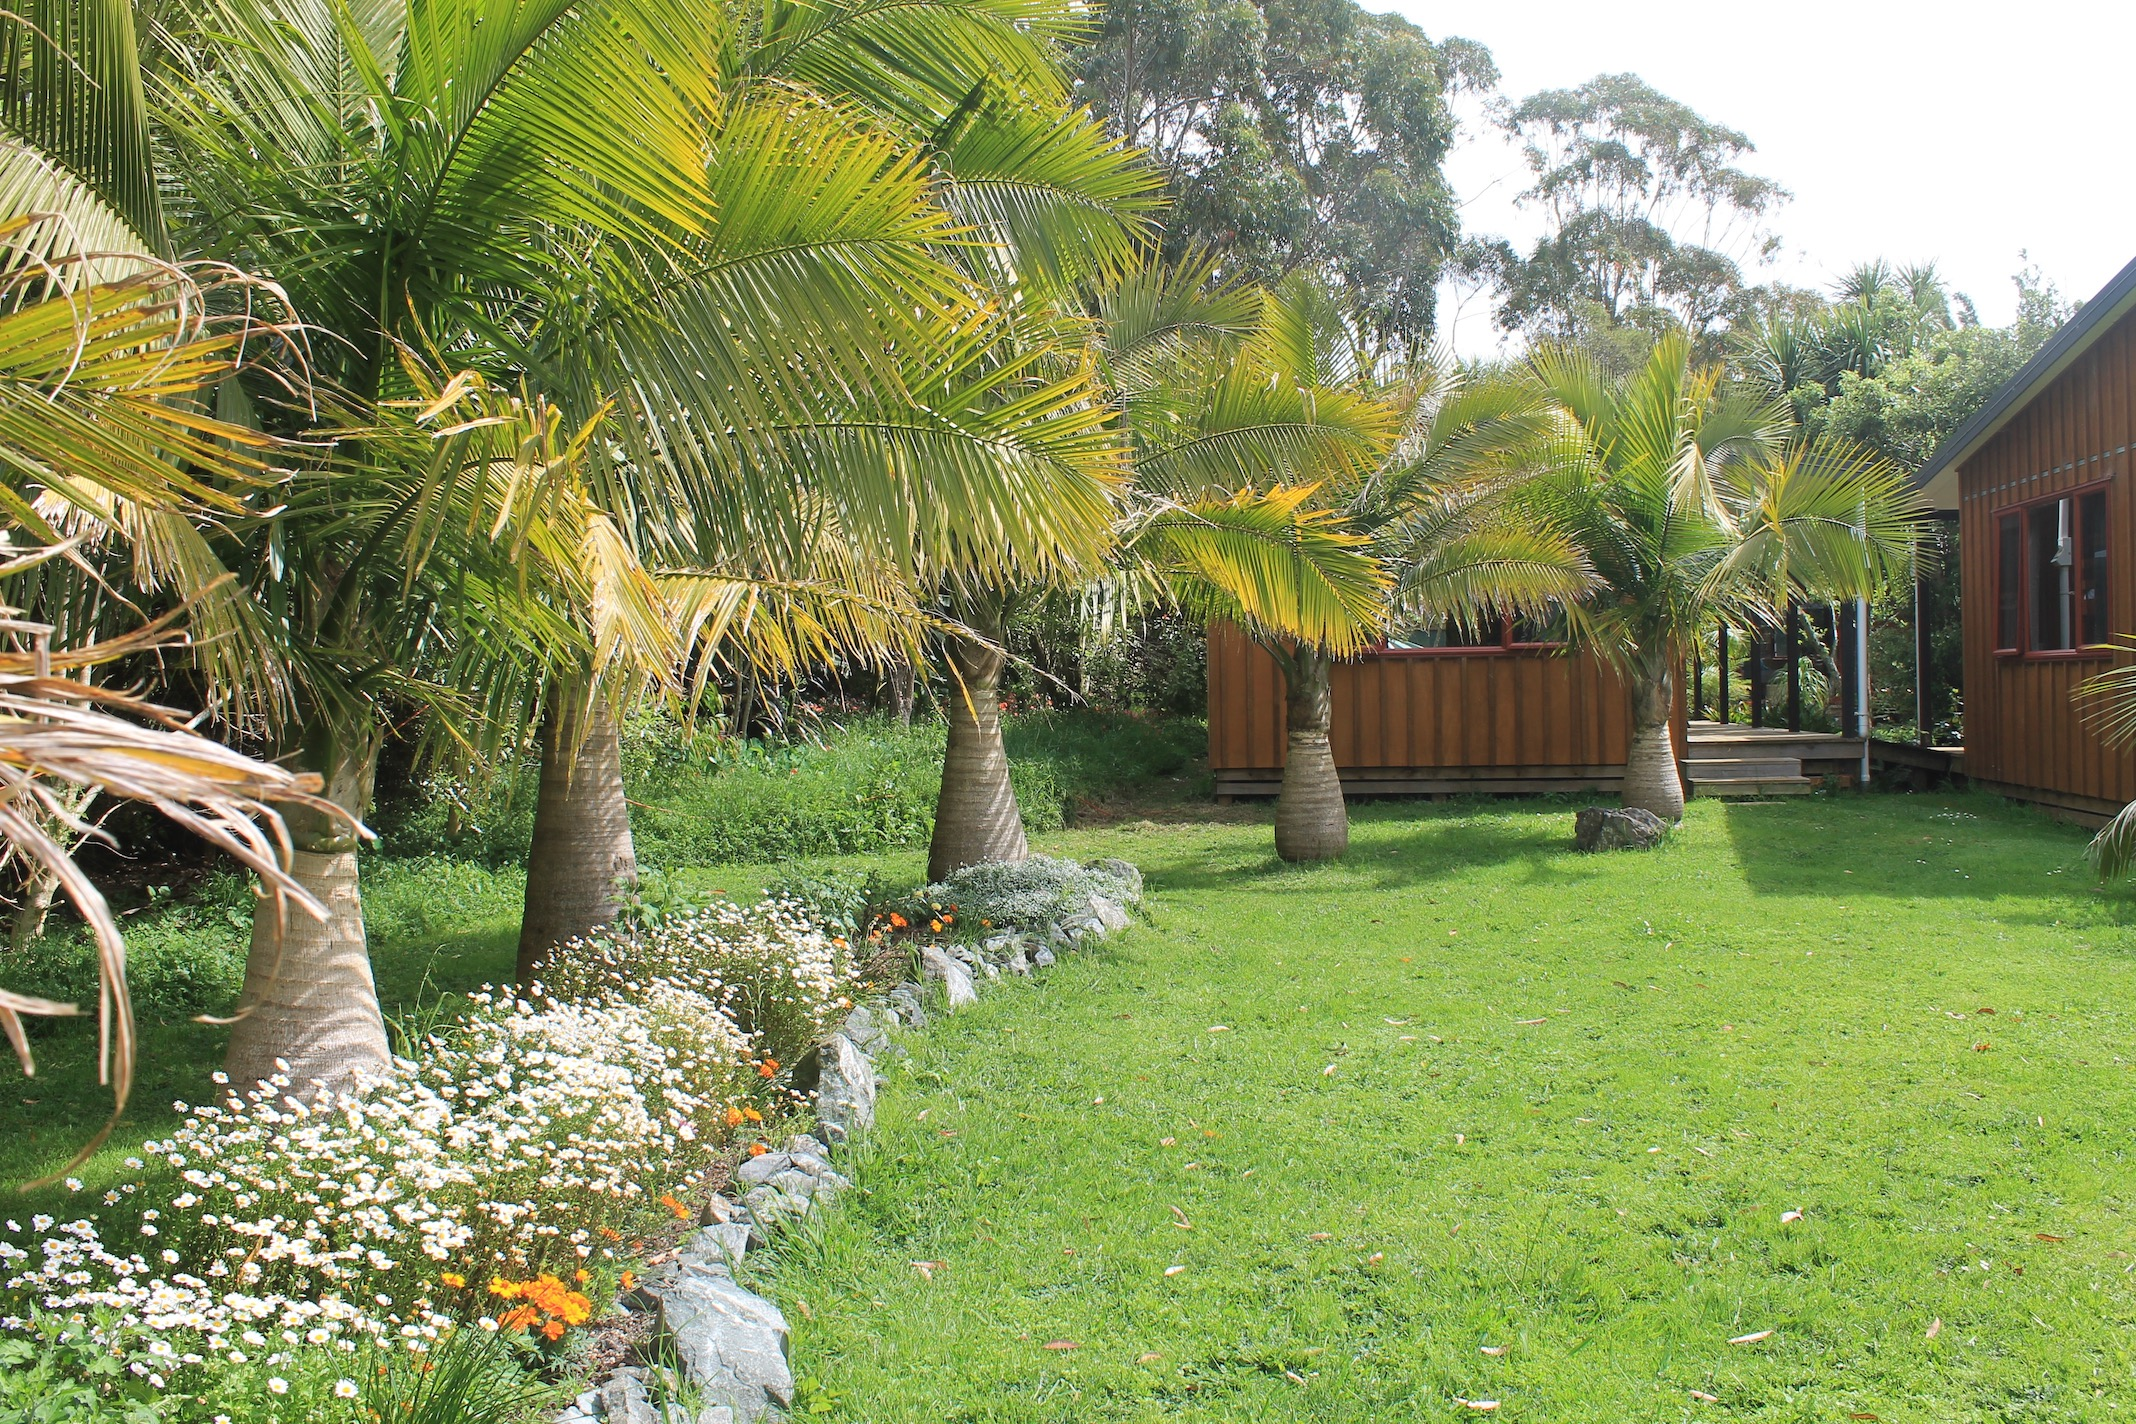 PALM GROVE AT GUARDIAN HOUSE